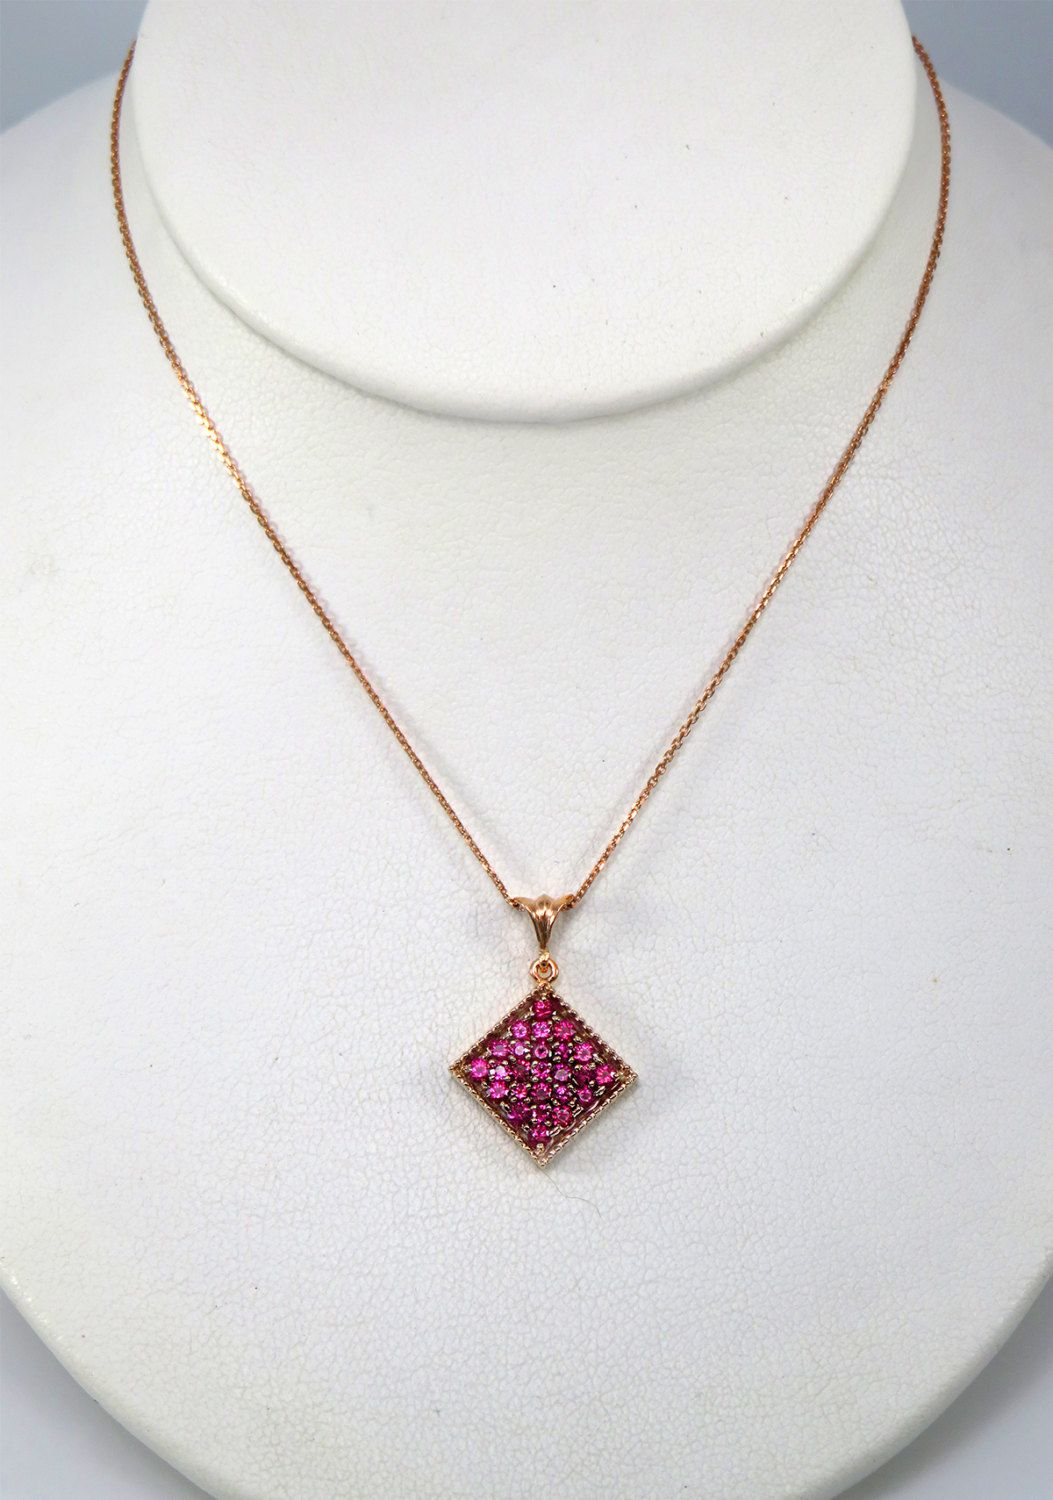 K rose gold and pave ruby pendant by gretzdesigns on etsy